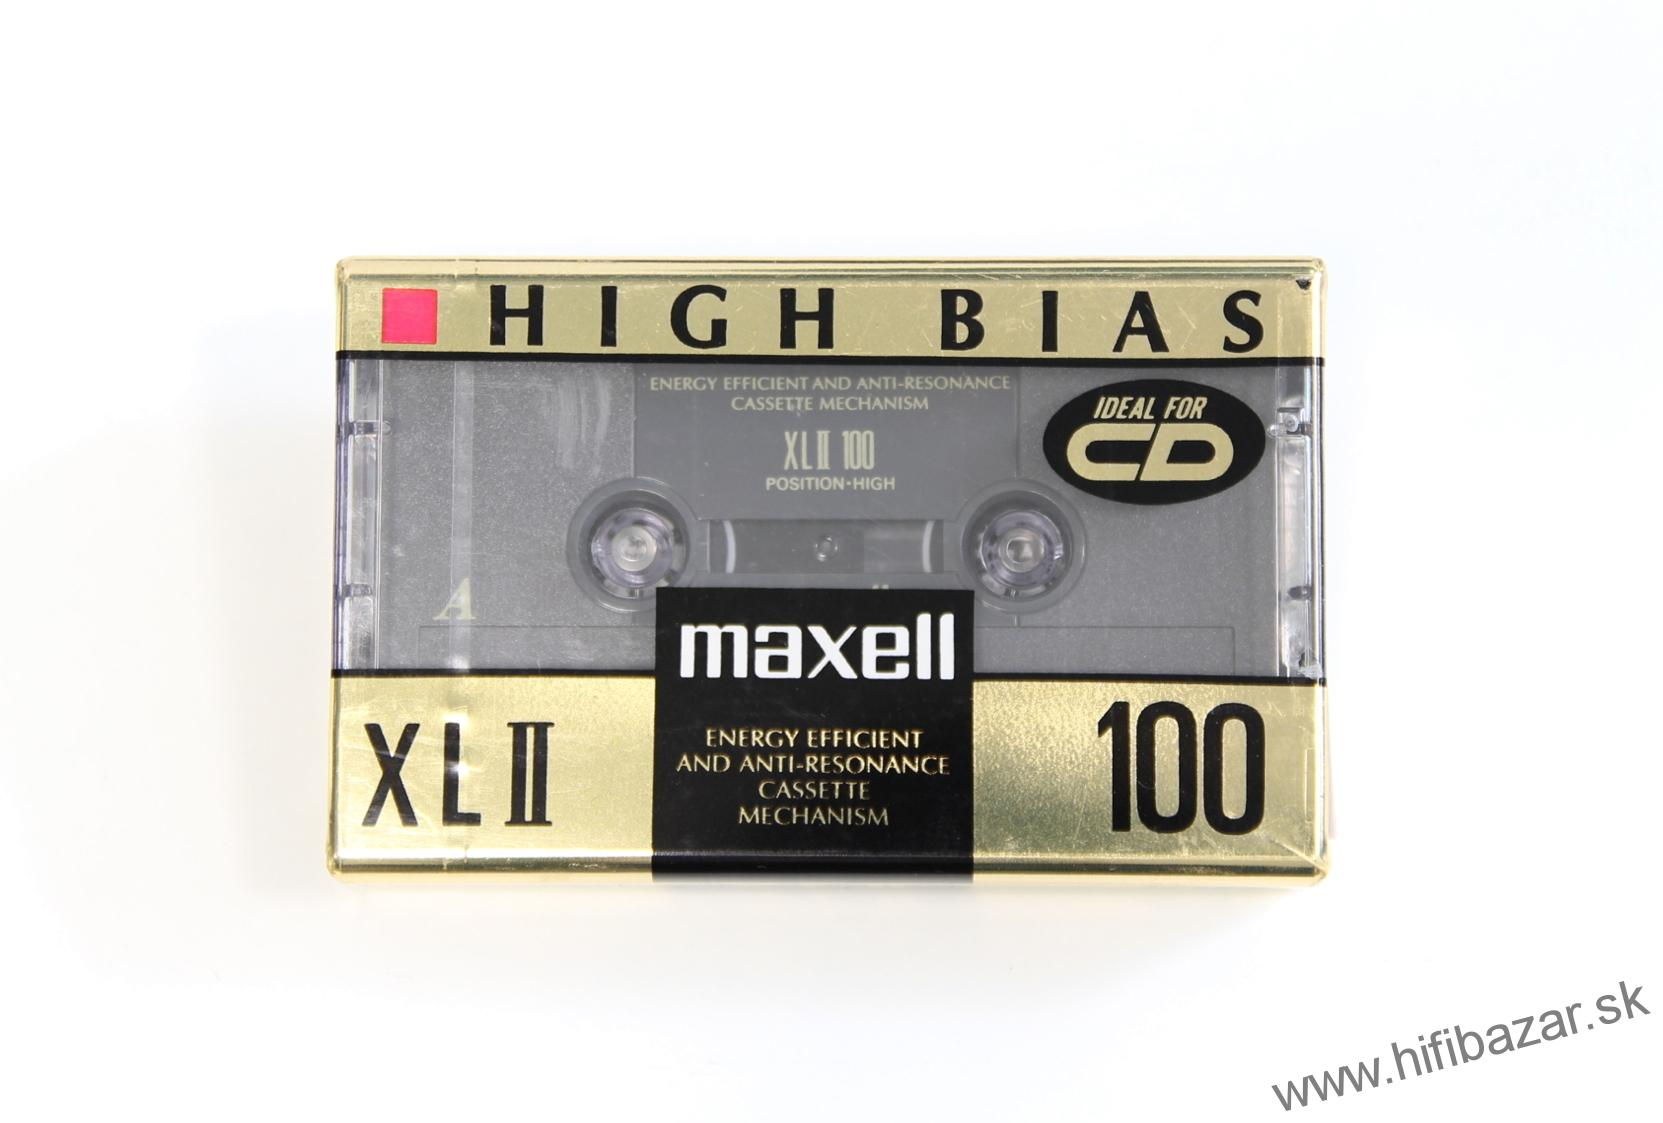 MAXELL XLII-100 High Bias